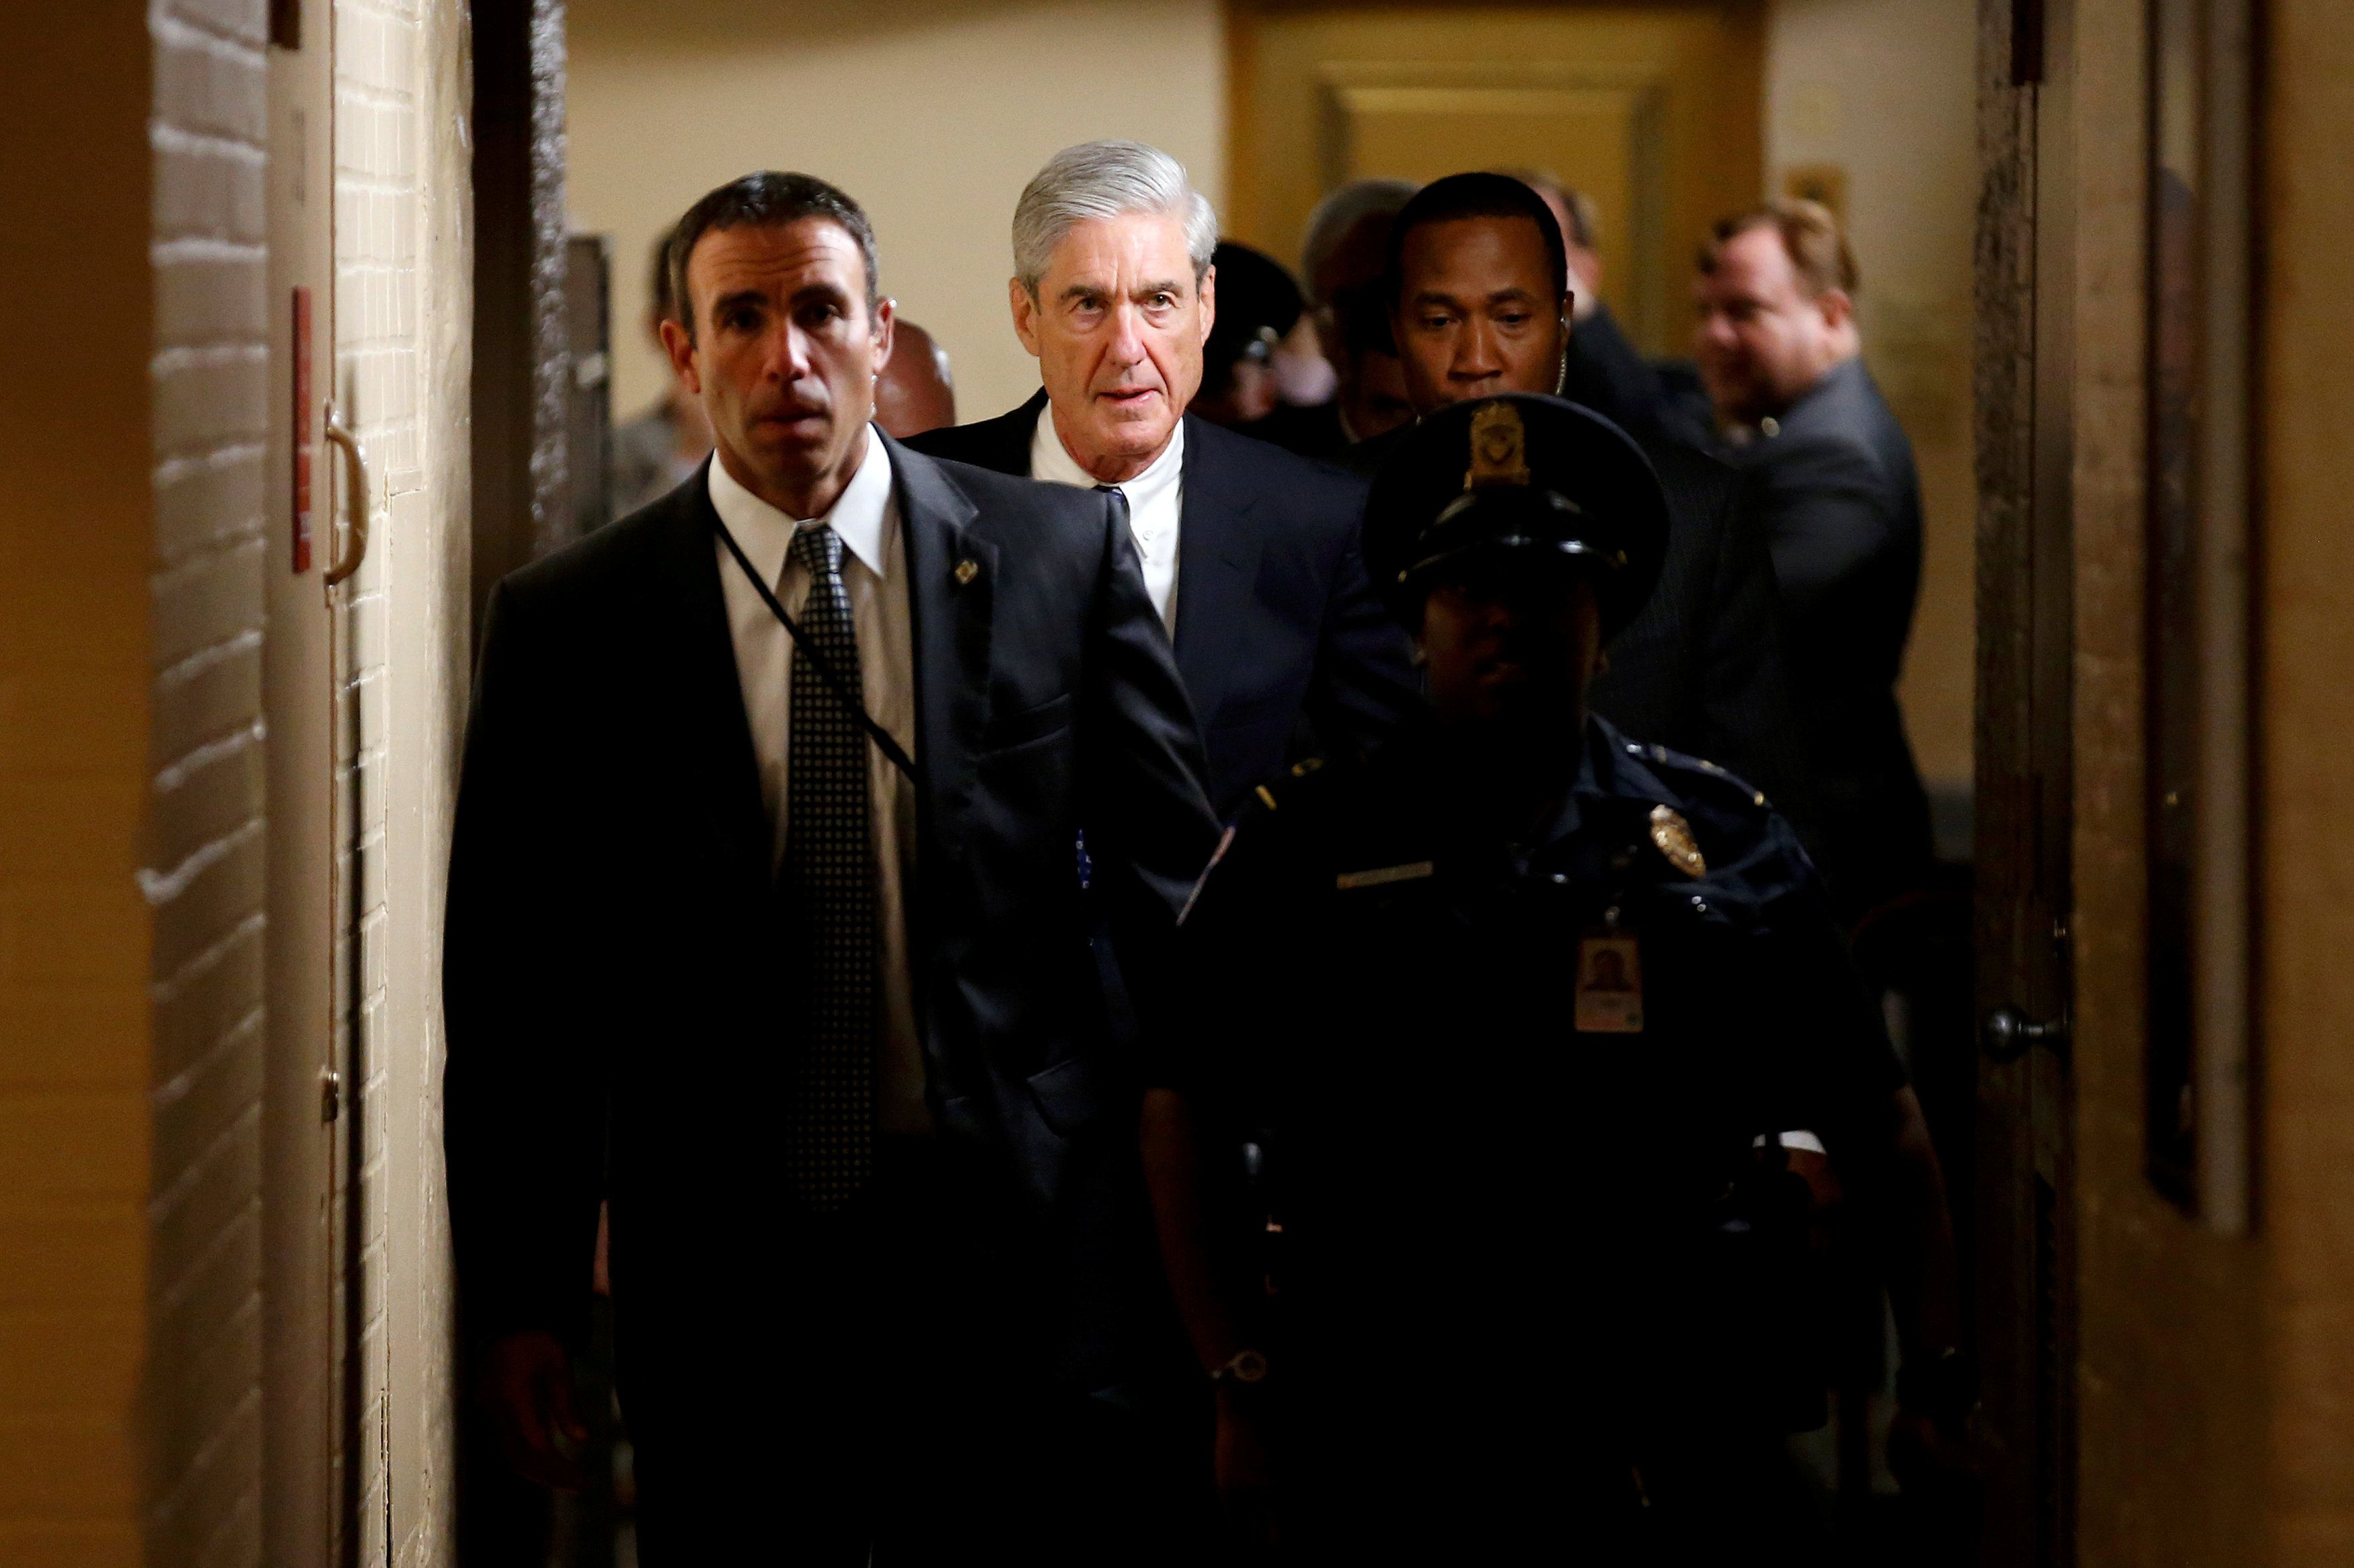 Mueller Wants To Question Trump On Comey, Flynn And Obstruction